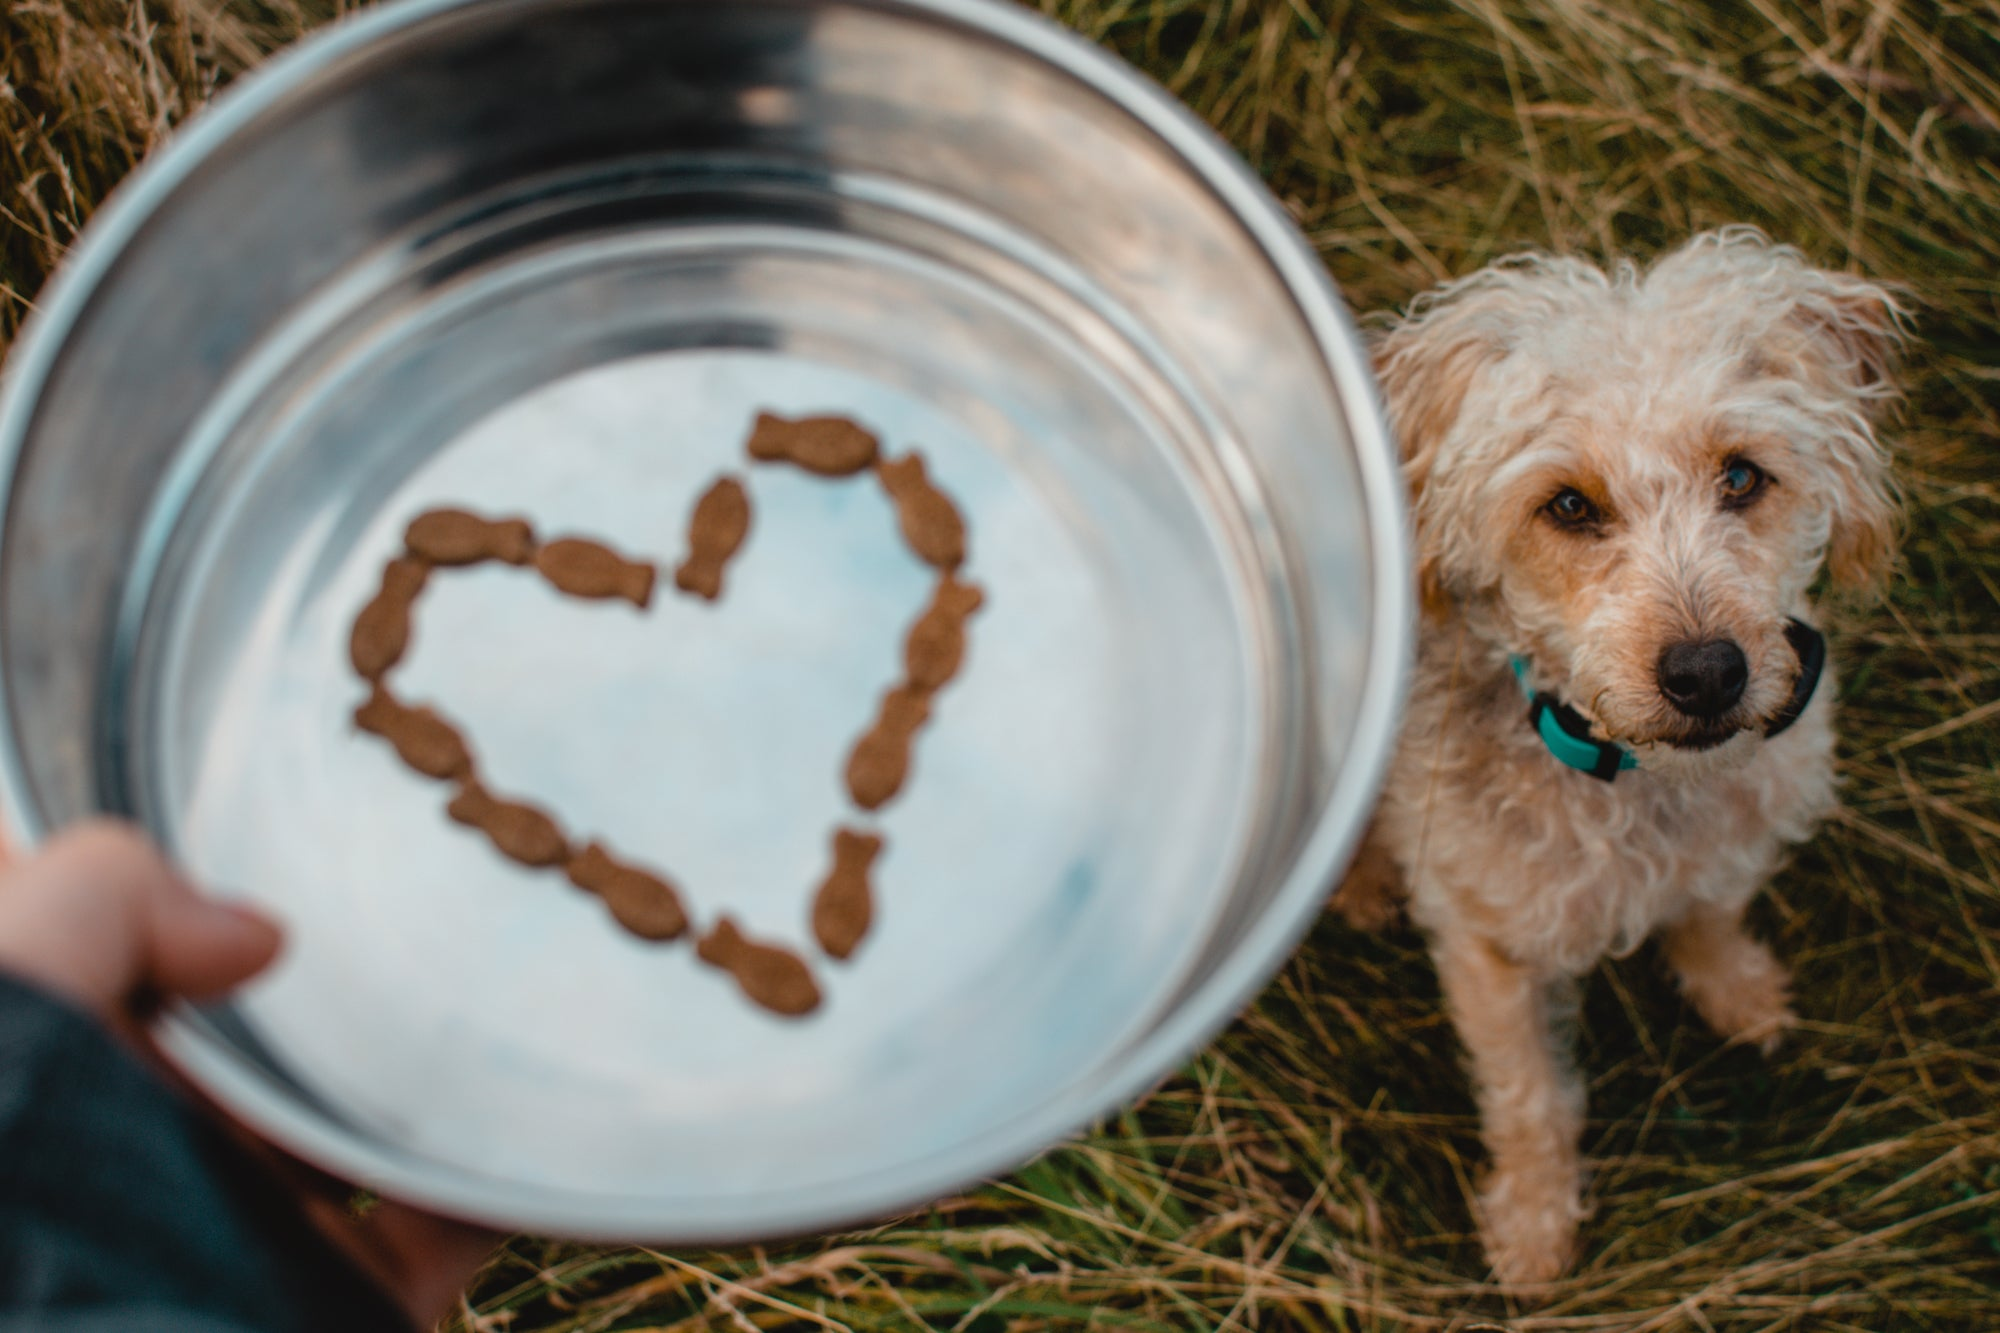 Feeding your dog: How much and how often?